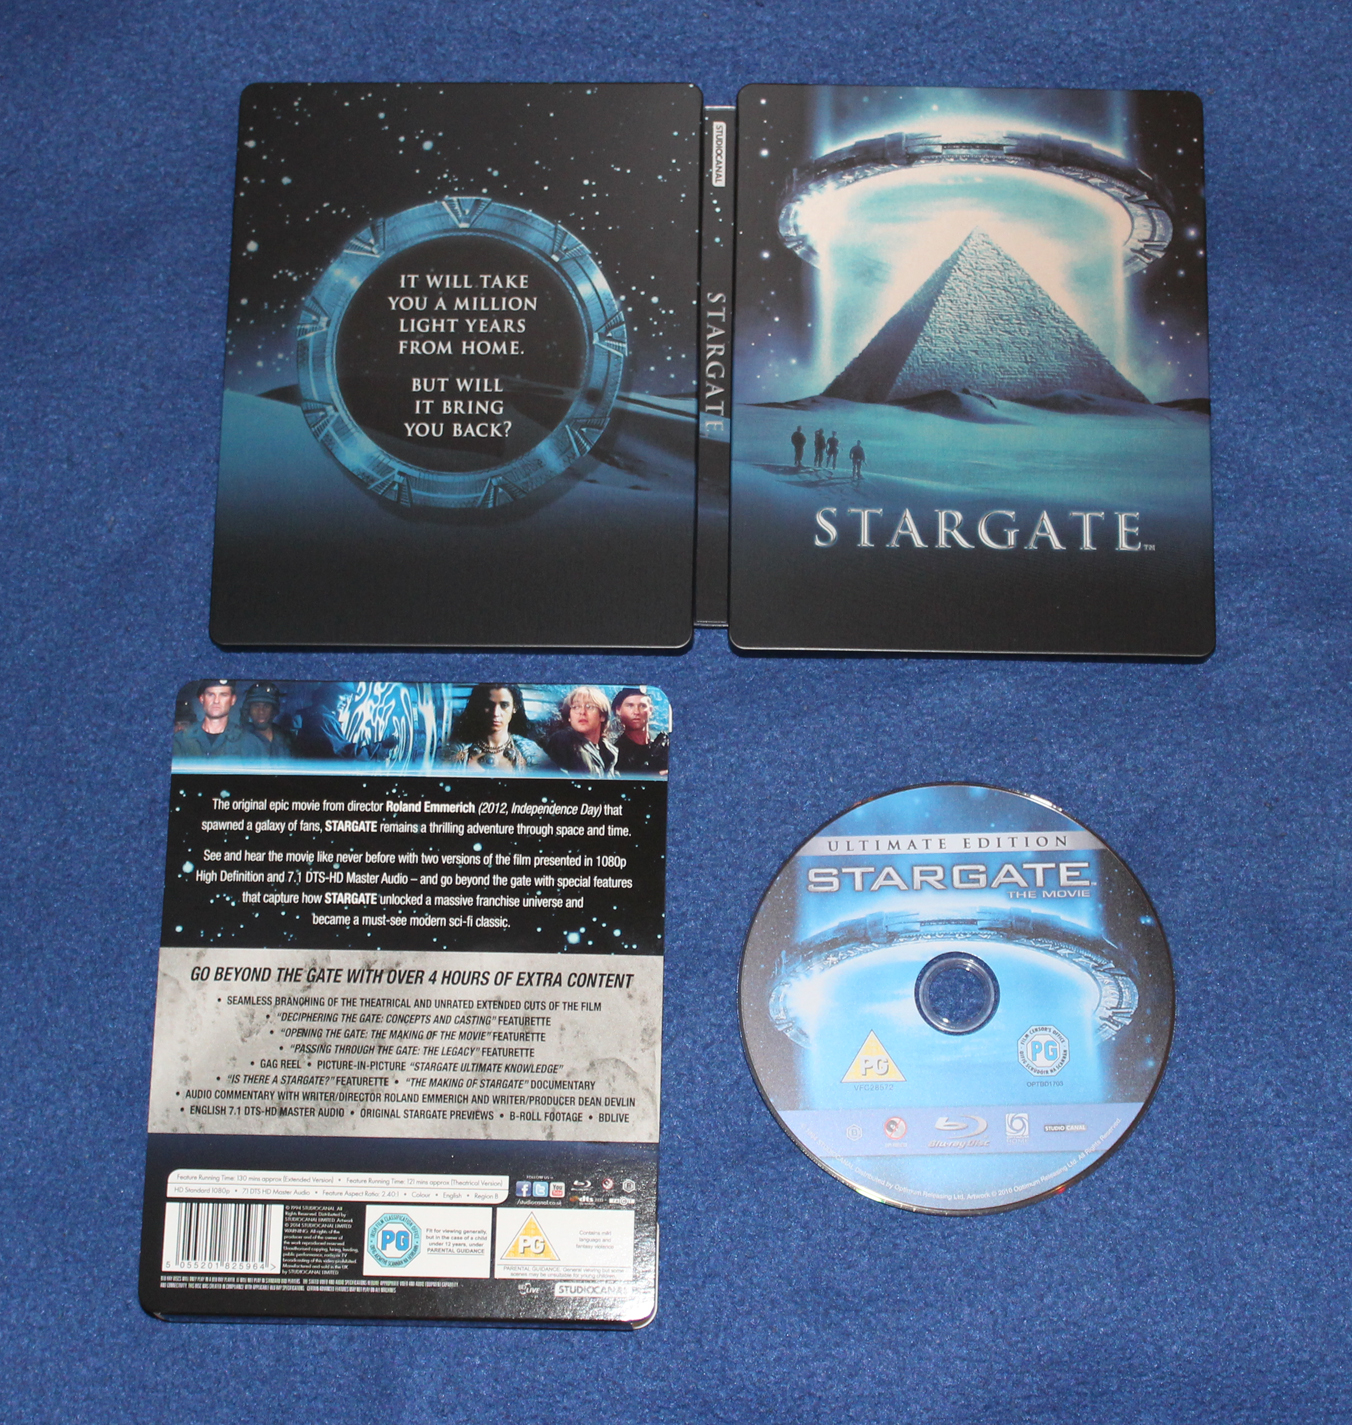 Stargate 20th Anniversary Edition - Exclusive Limited Edition Steelbook - 007